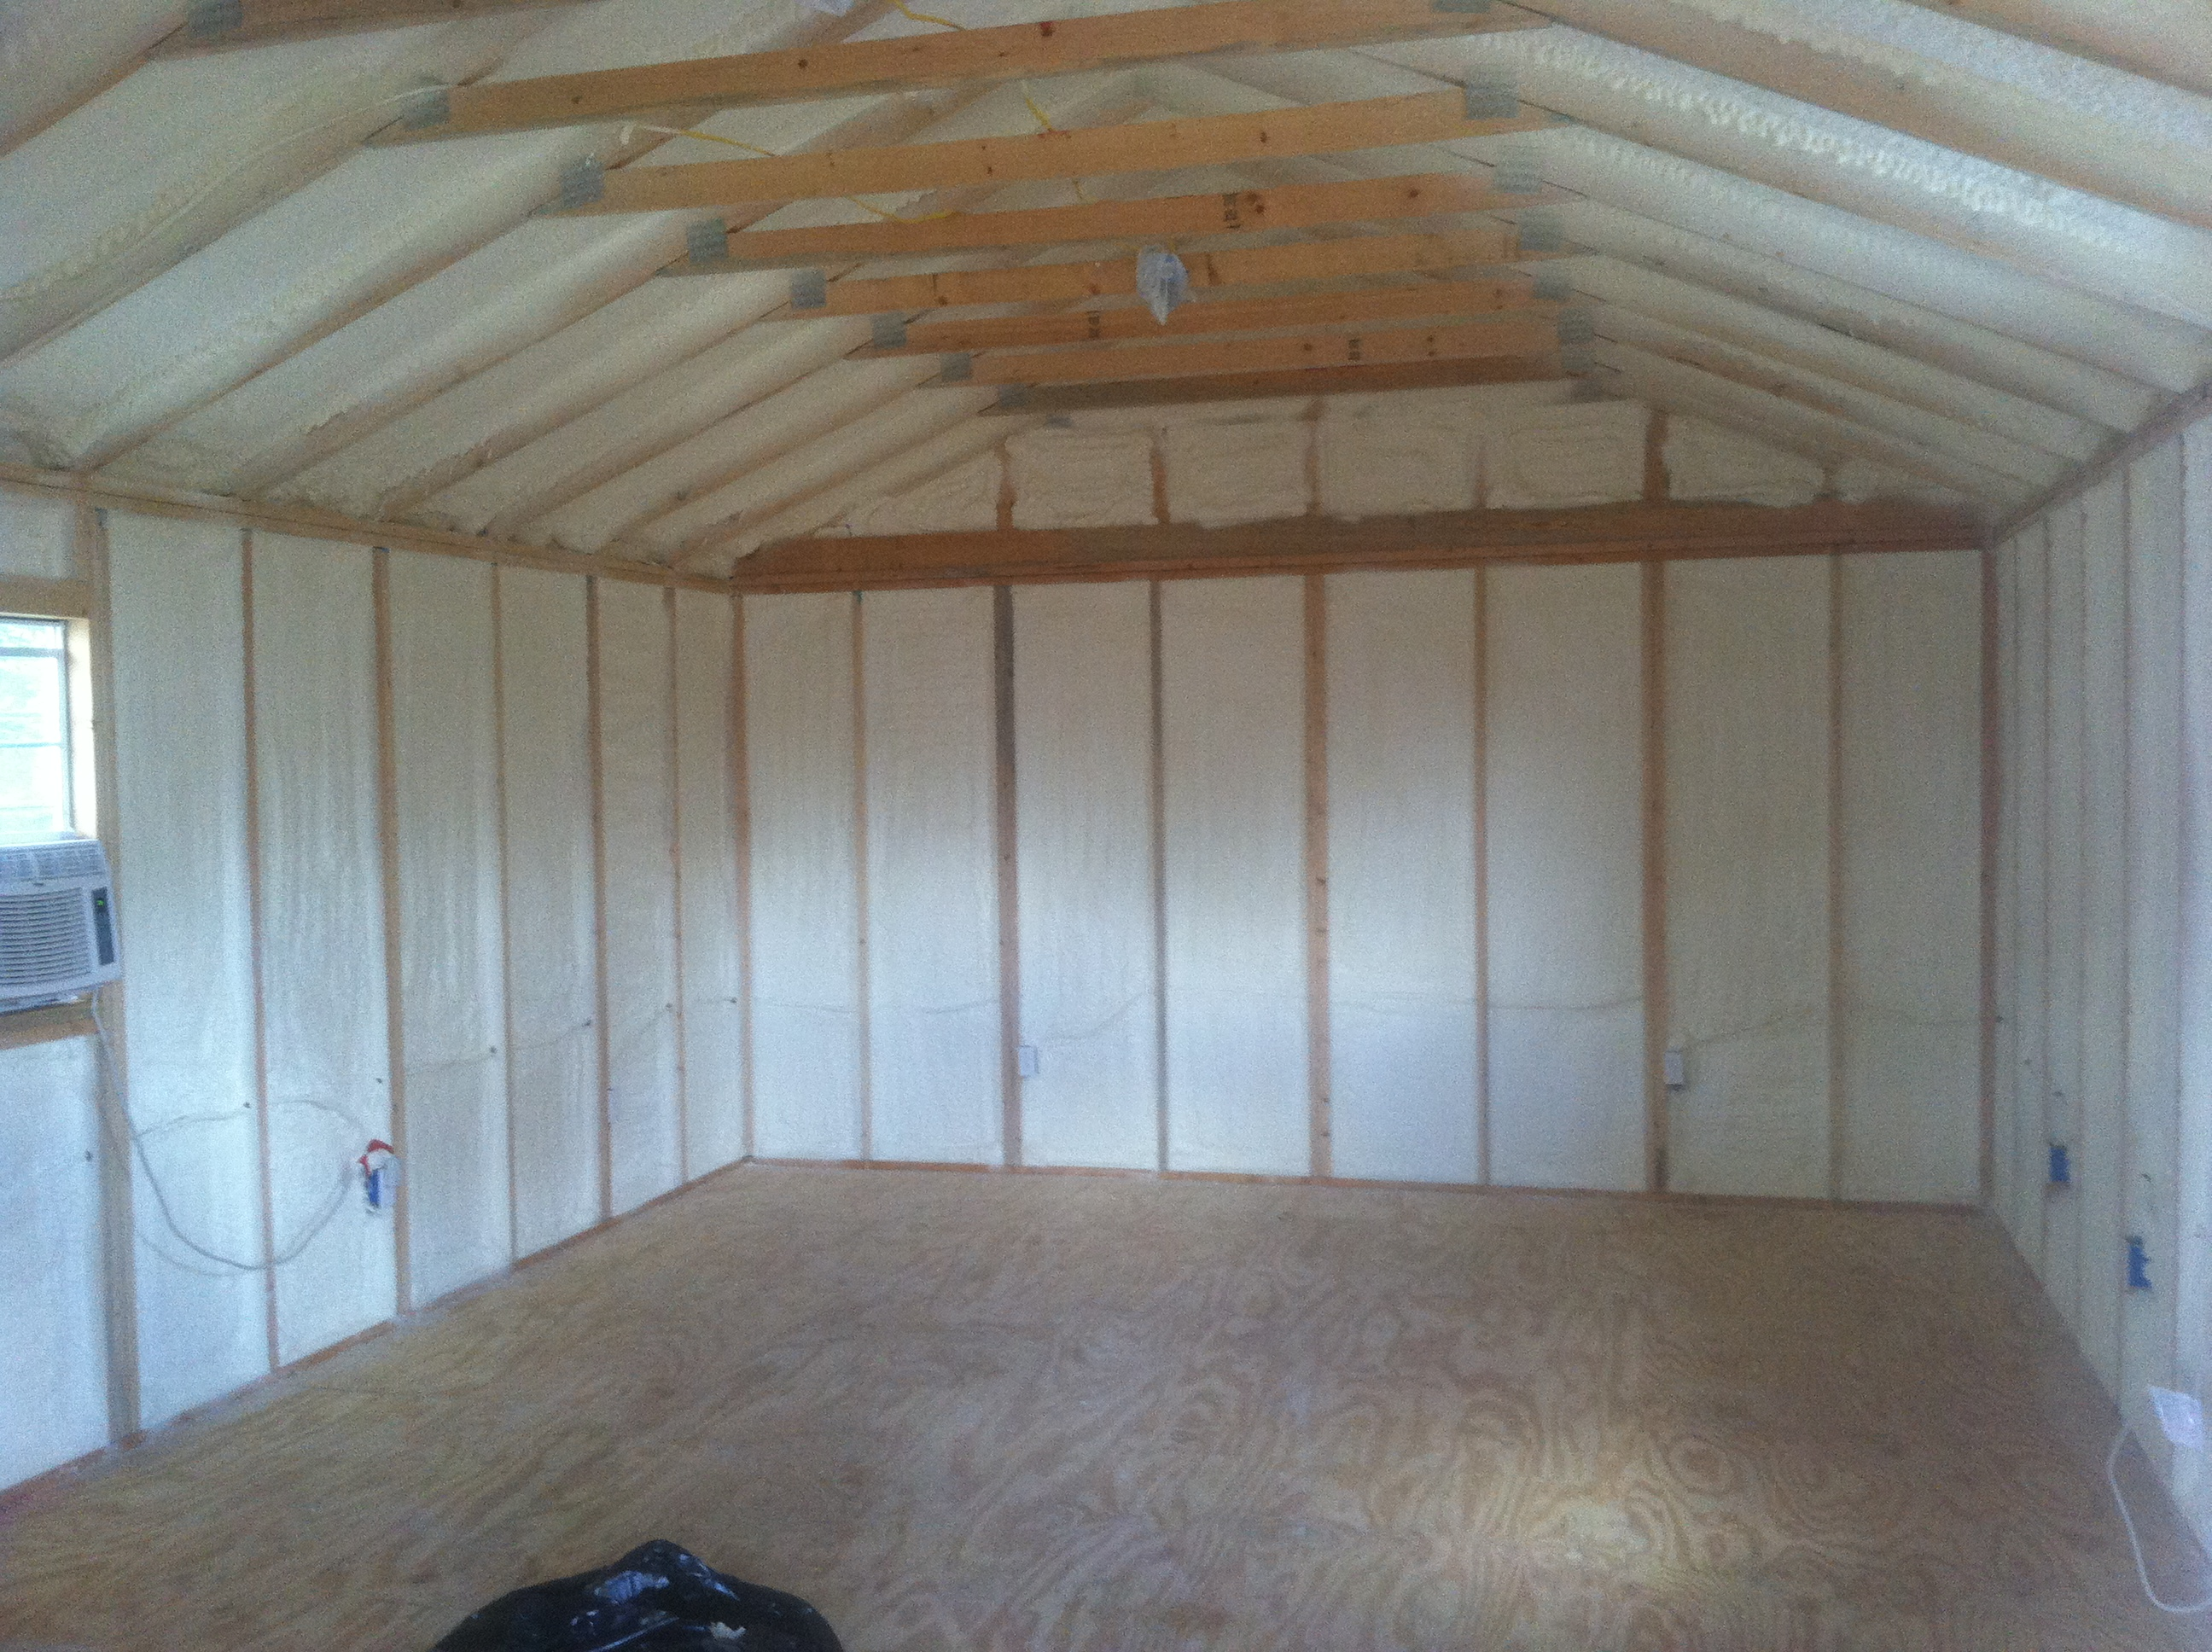 Spray Foam Insulation Pictures | J L Cox Enterprises - 512 ...